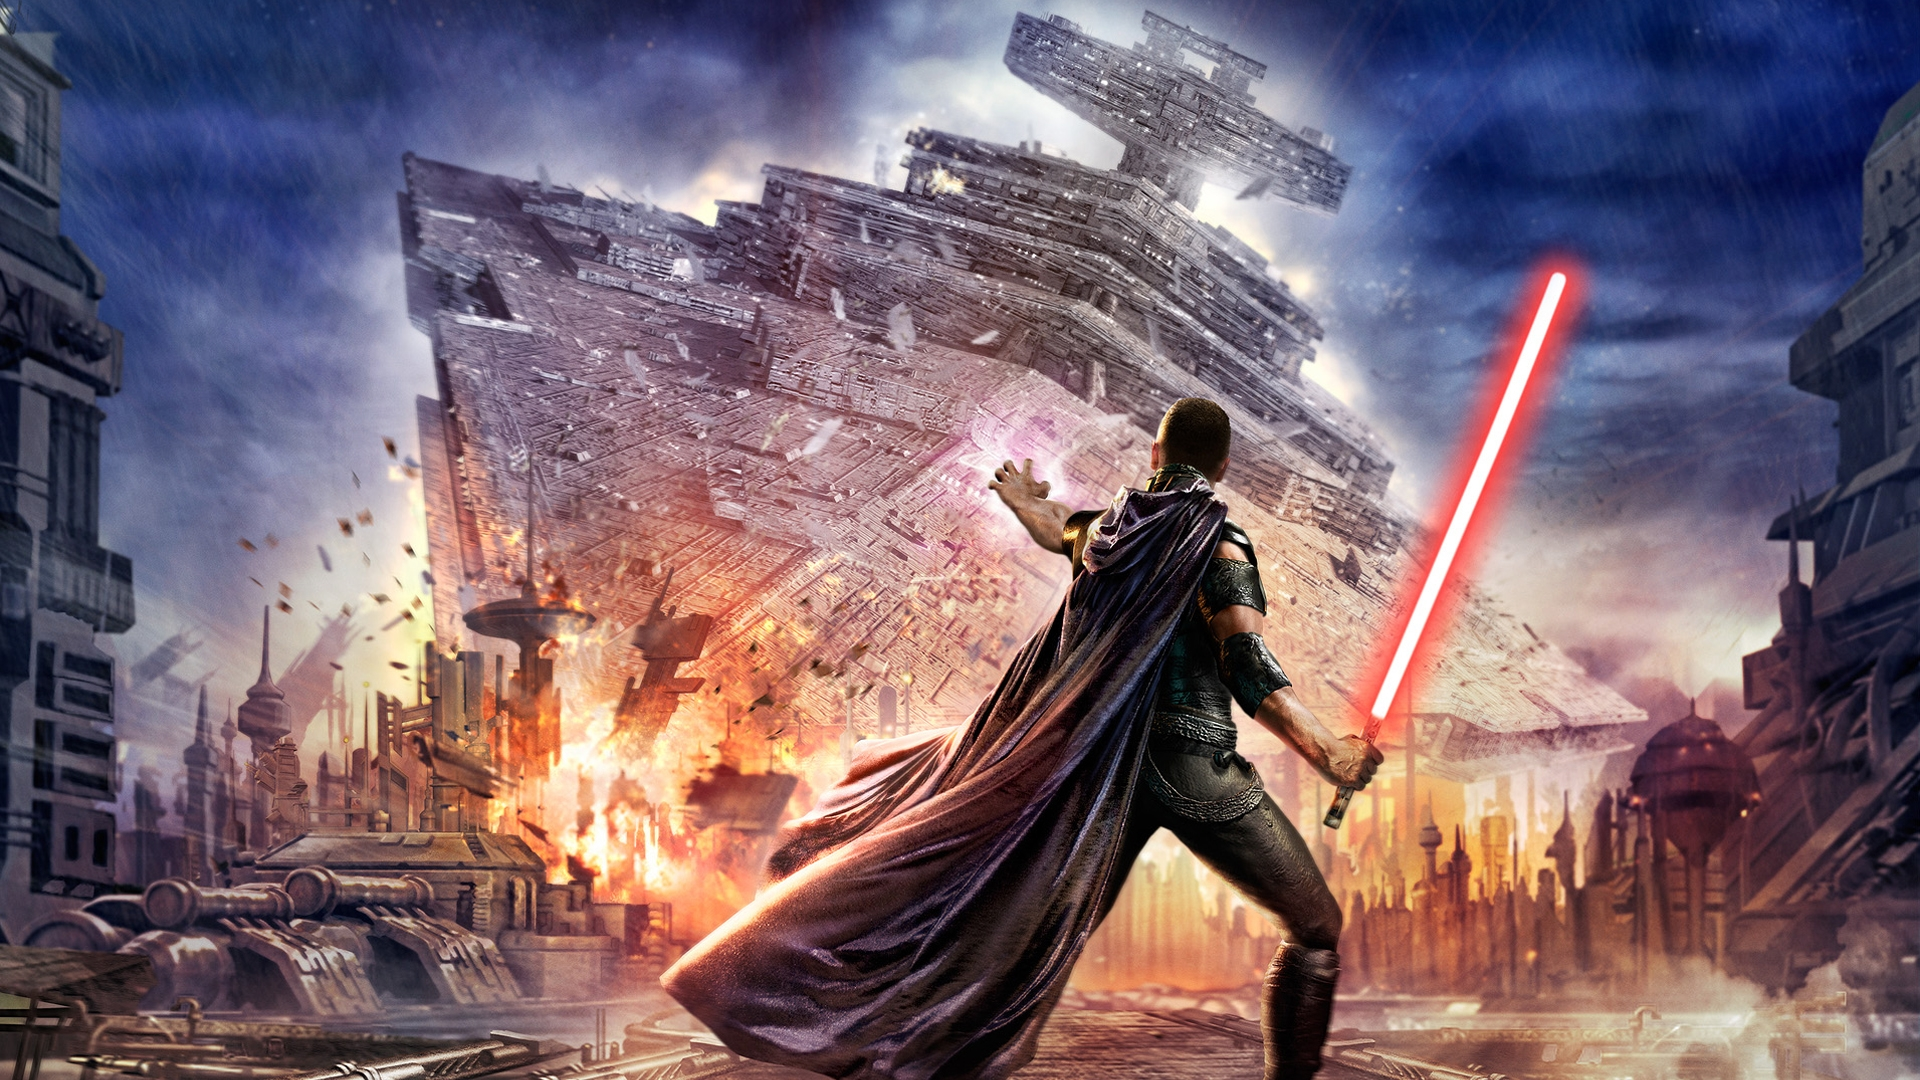 star wars video game wallpaper